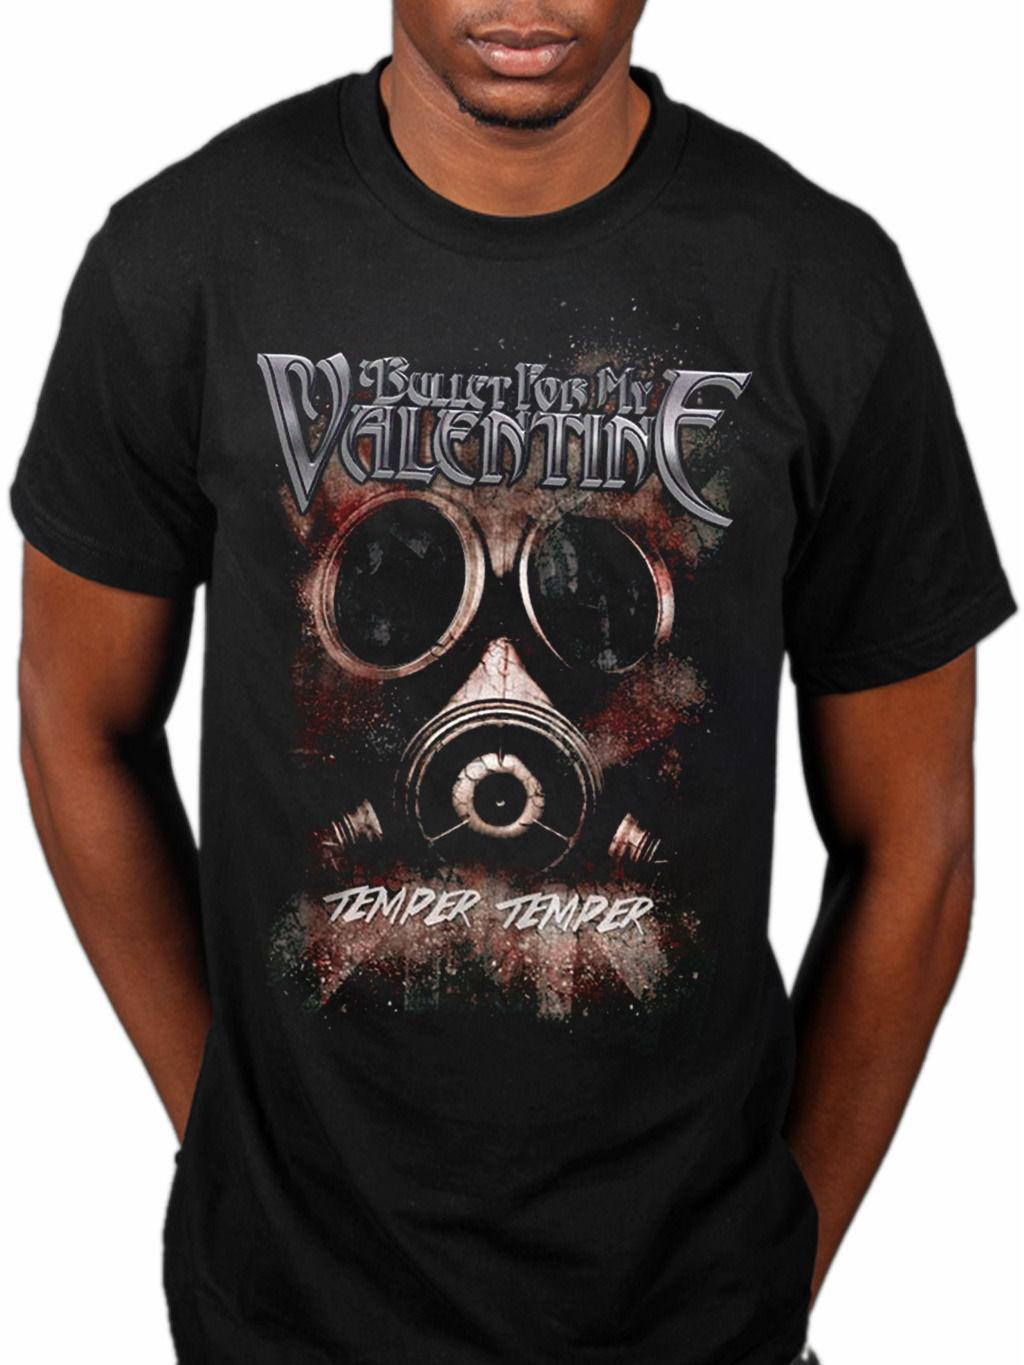 Bullet For My Valentine Temper Temper Gas Mask T Shirt New Band